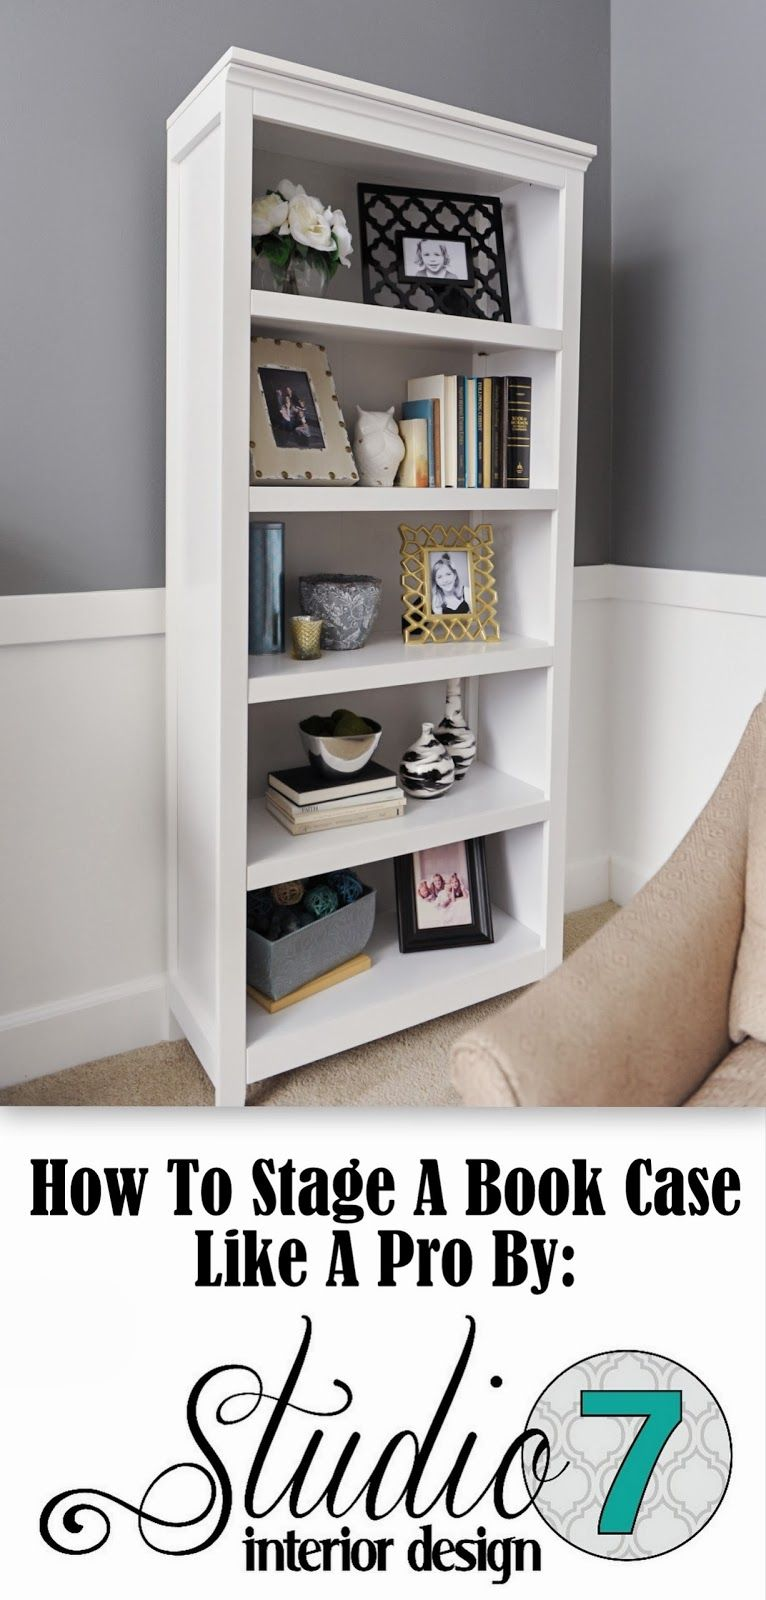 I Have A Few Book Cases The Need Staging Guess Now That My Kindles It Is Time To Donate Some Books